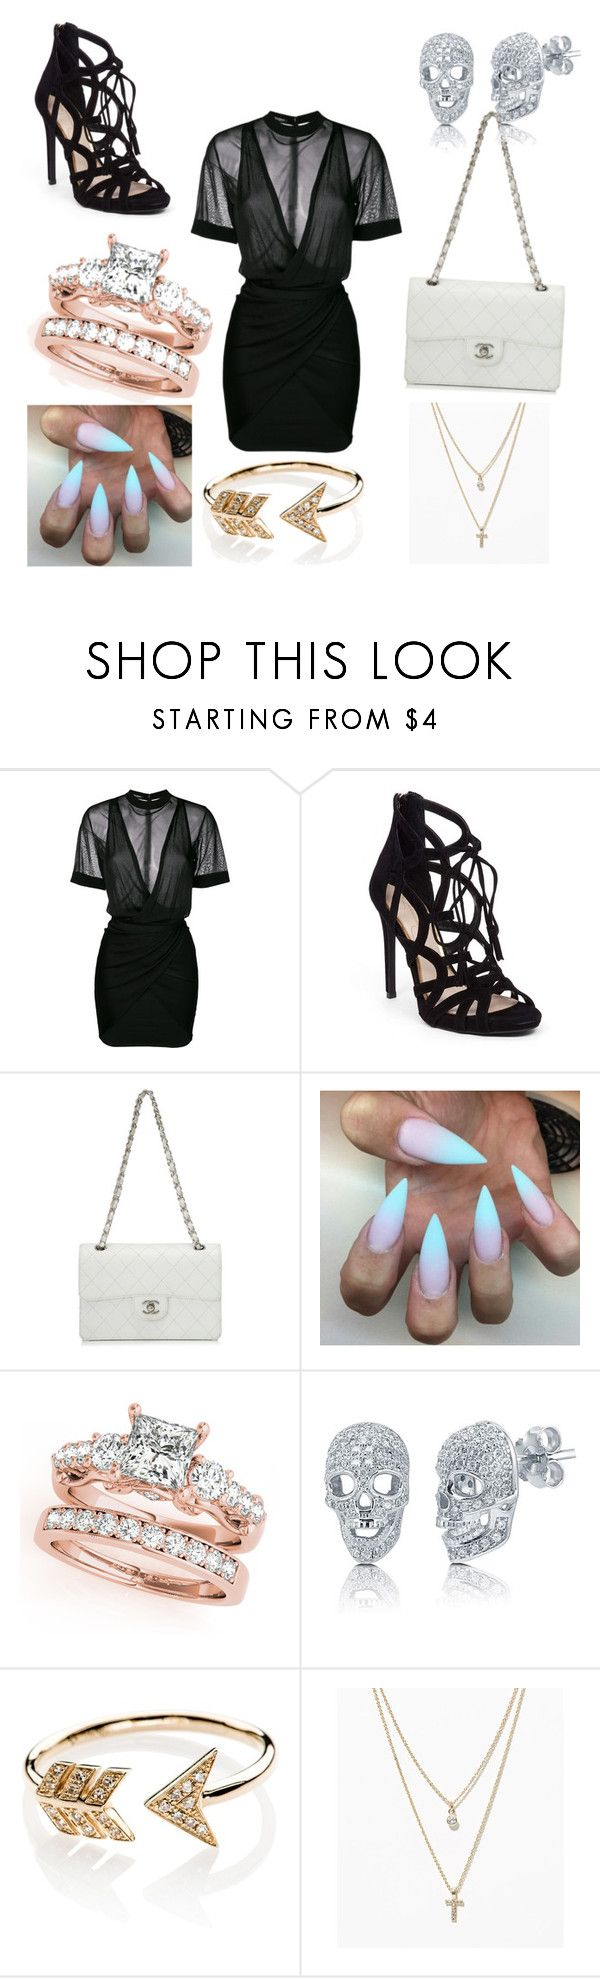 """Night out"" by ellouisegrisdale ❤ liked on Polyvore featuring Balmain, Jessica Simpson, Chanel, BERRICLE, EF Collection and LOFT"